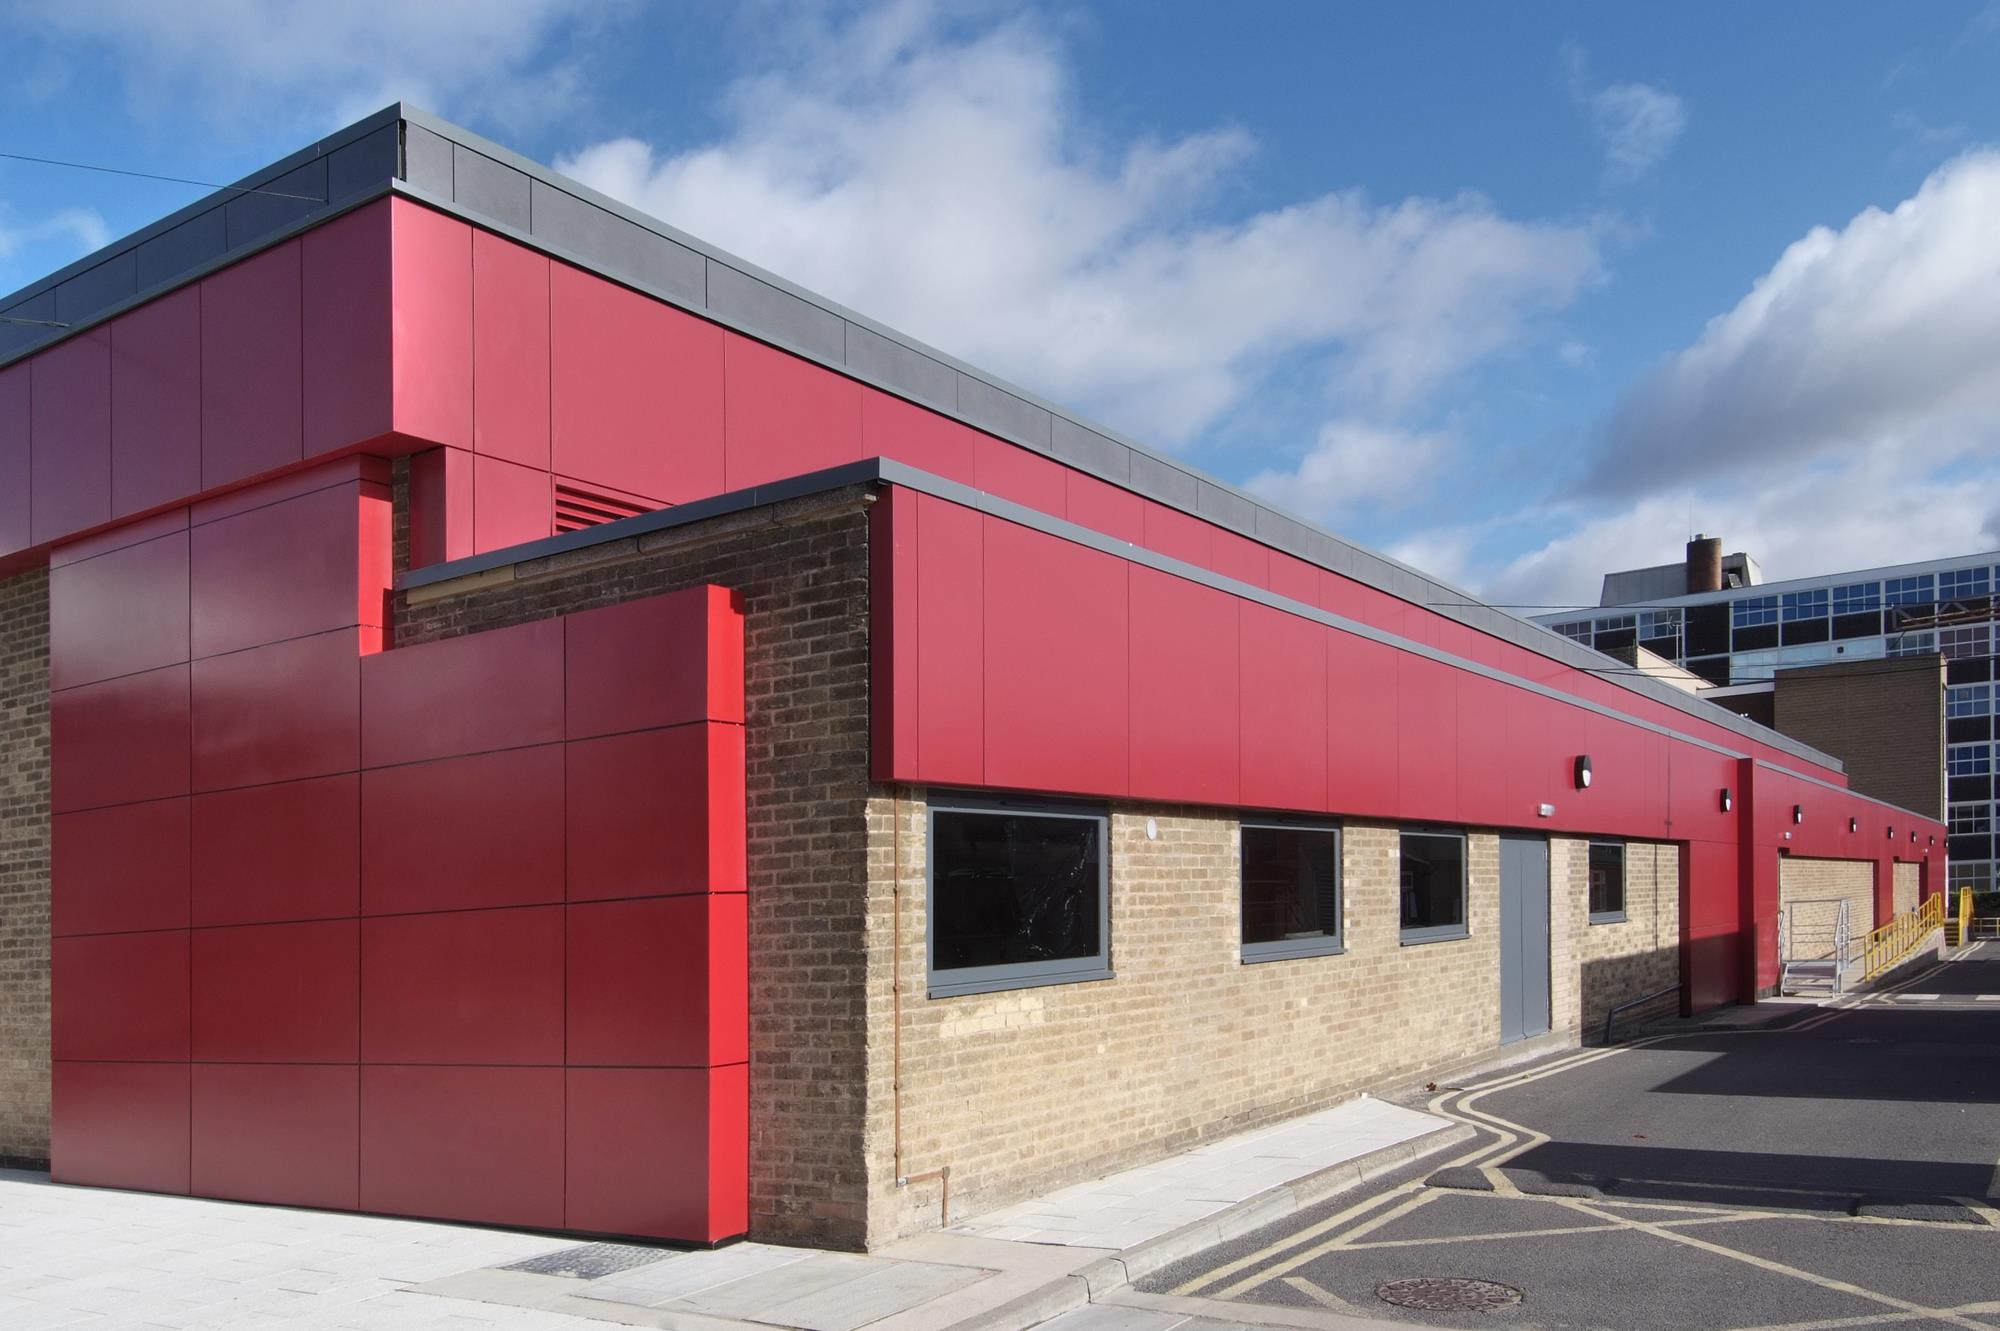 West Notts College: Photo 3